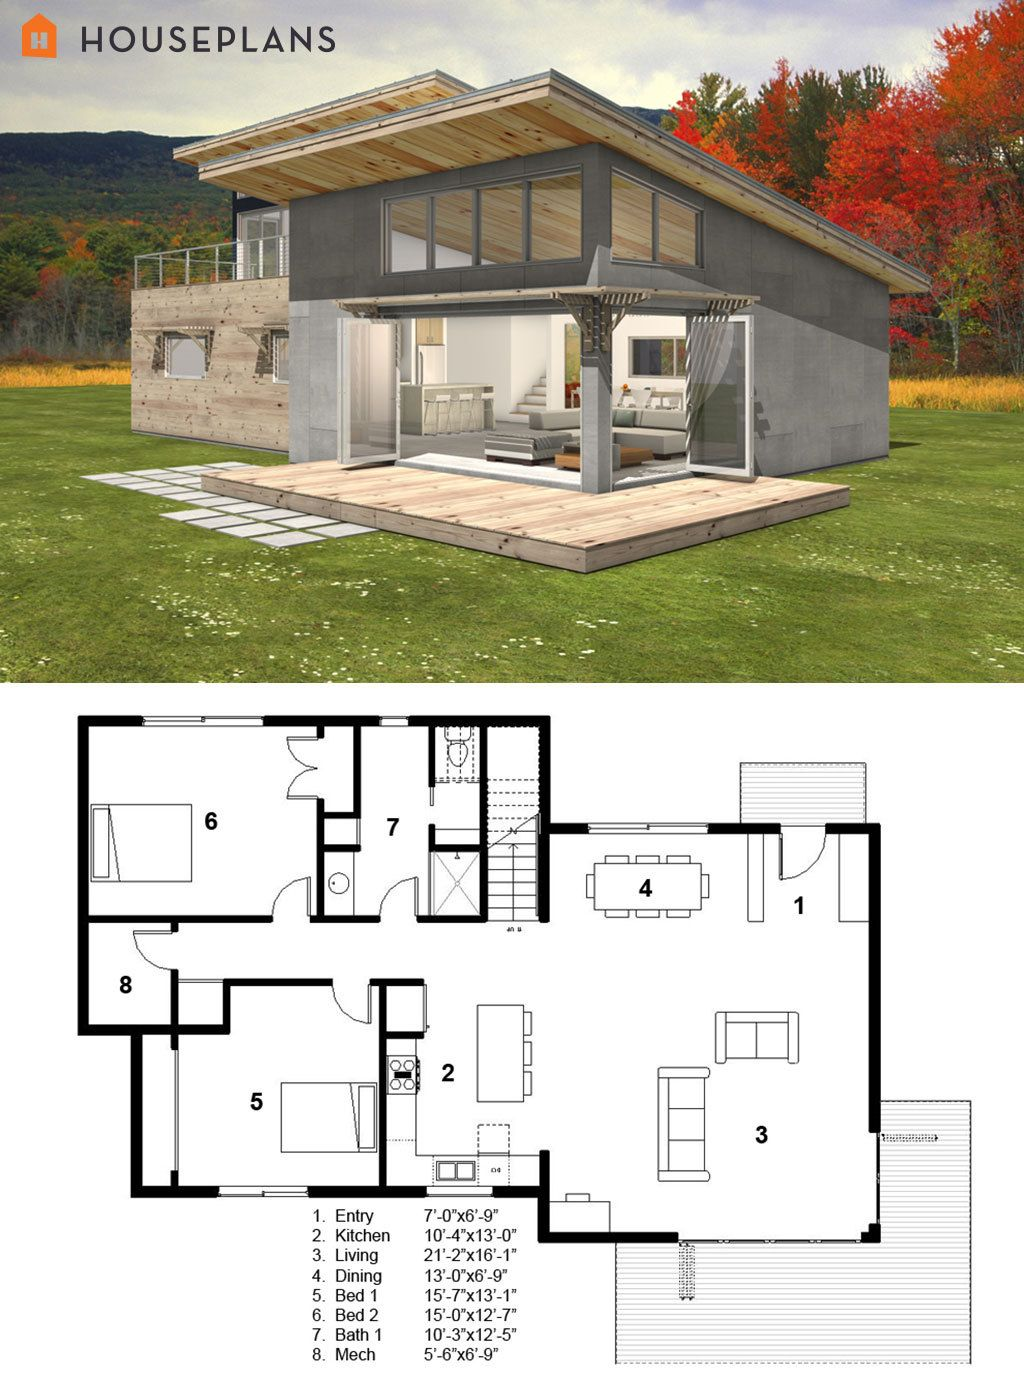 Small modern cabin house plan by freegreen energy for Small cabin floorplans